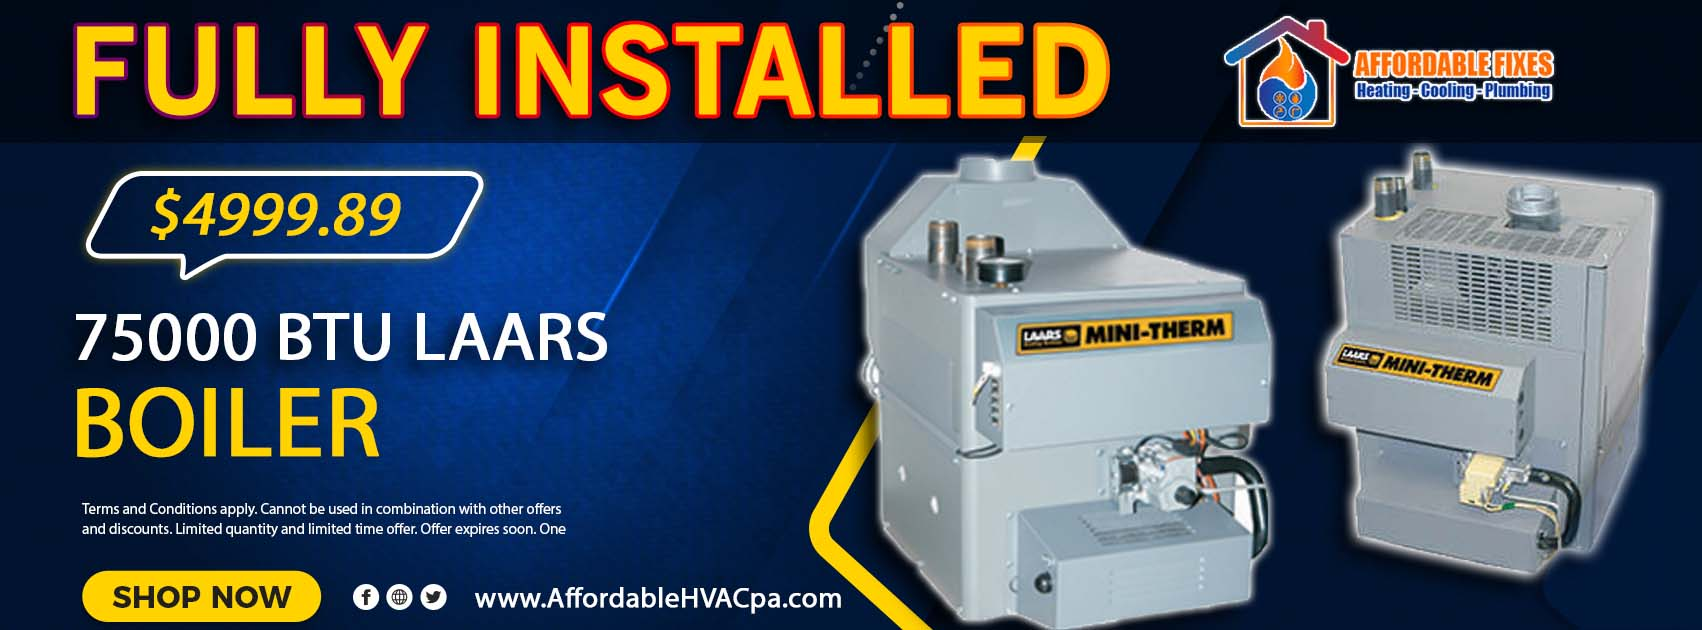 Boiler Installation Service Promotion in Philadelphia PA and Bucks County PA